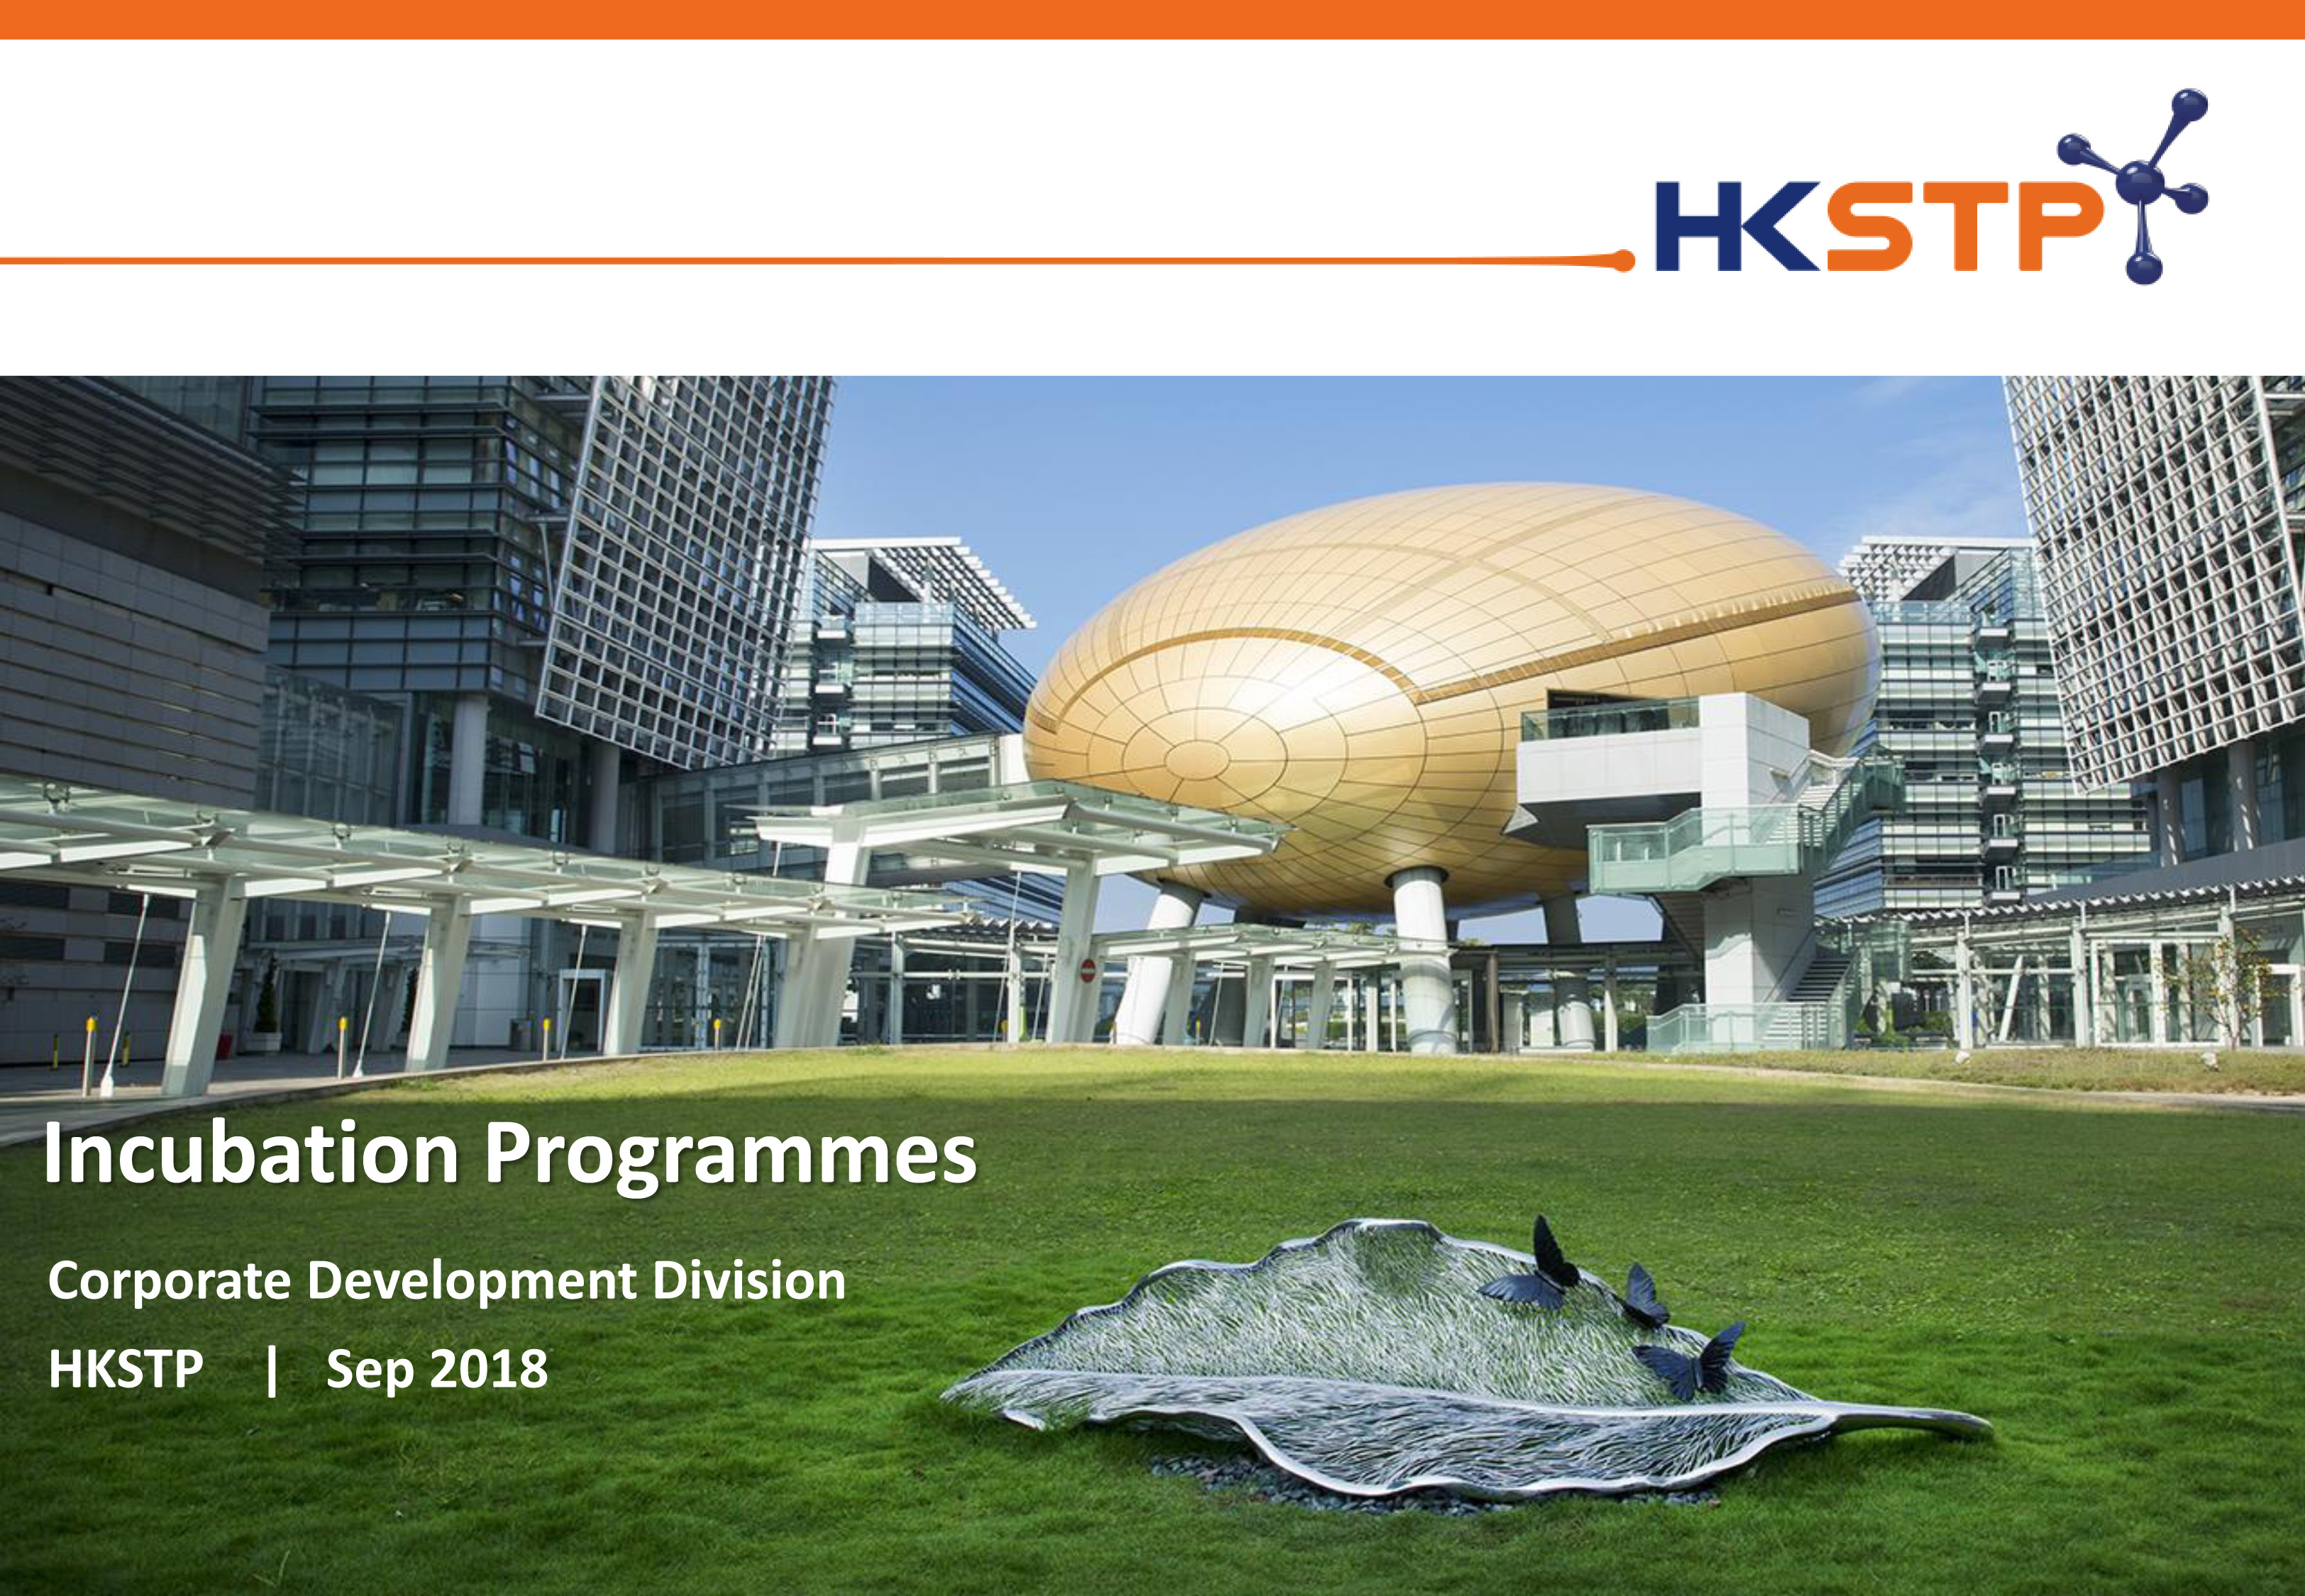 Briefing Session of HKSTP Incubation Programme for TSSSU@HKU and iDendron on Sept 6, 2018